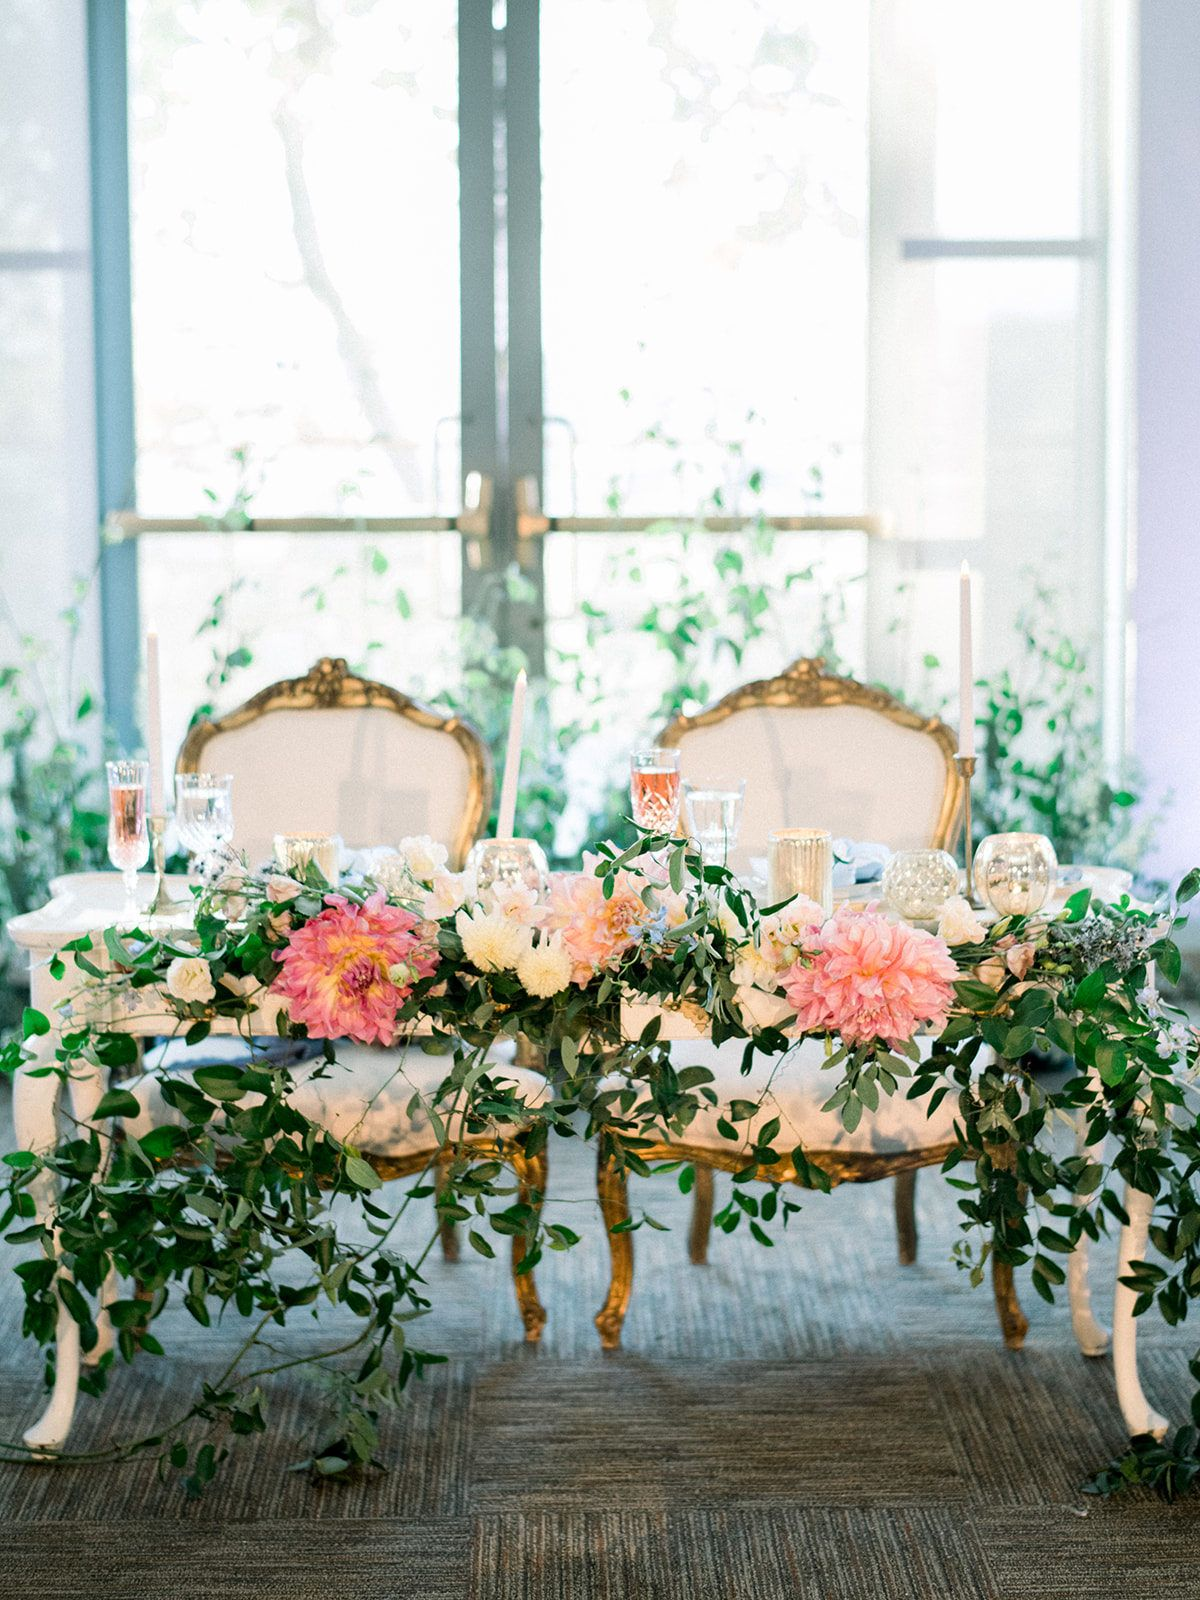 The Prettiest Pastel Wedding Inspiration At Diamond Bar Center Timeless Wedding Decor Pastel Wedding Wedding